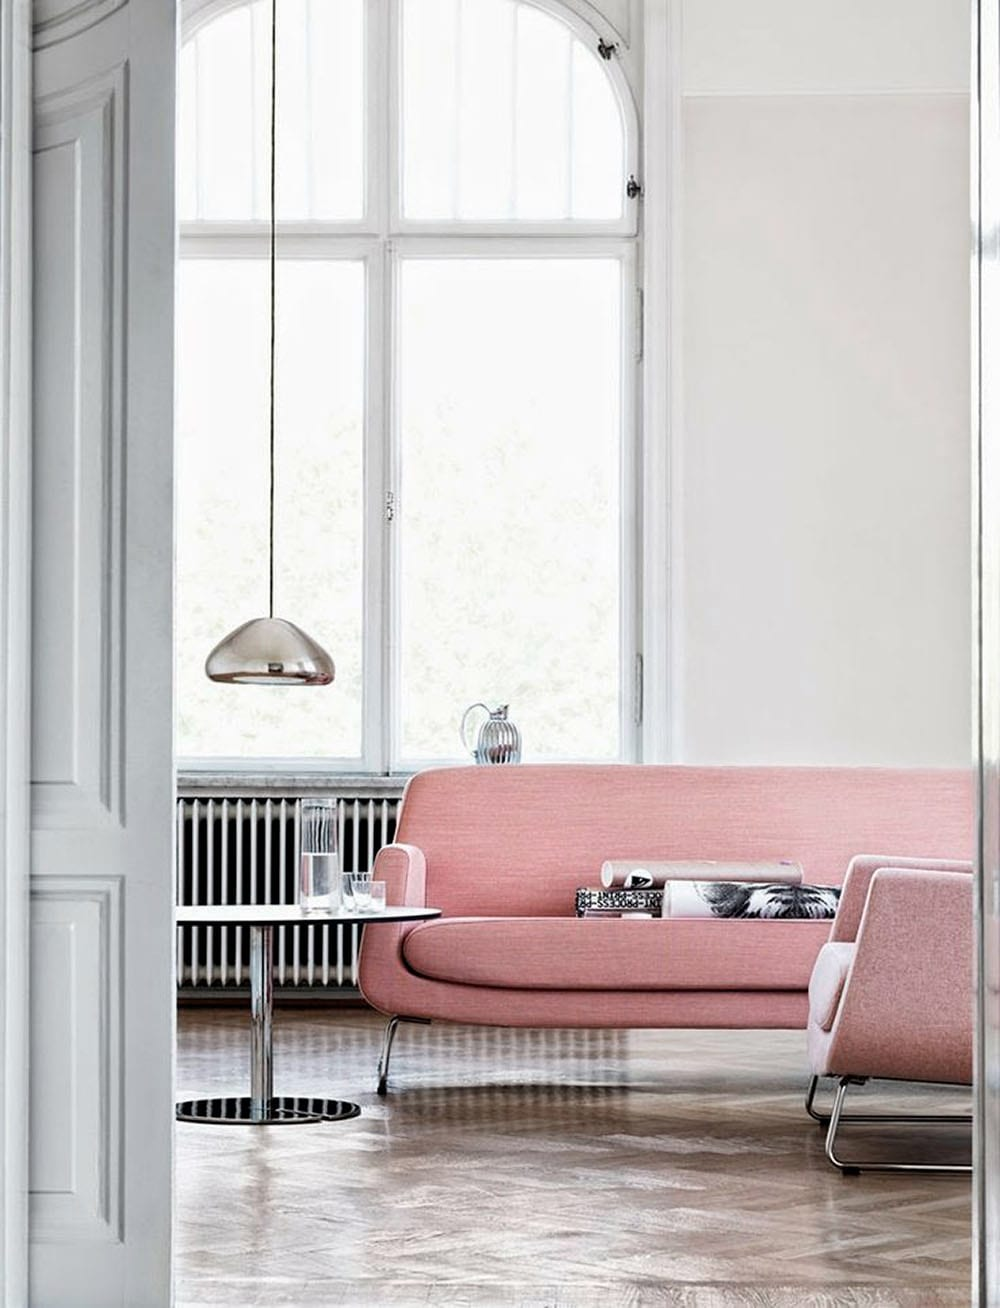 Decorating With Dusty Pink StyleampMinimalism